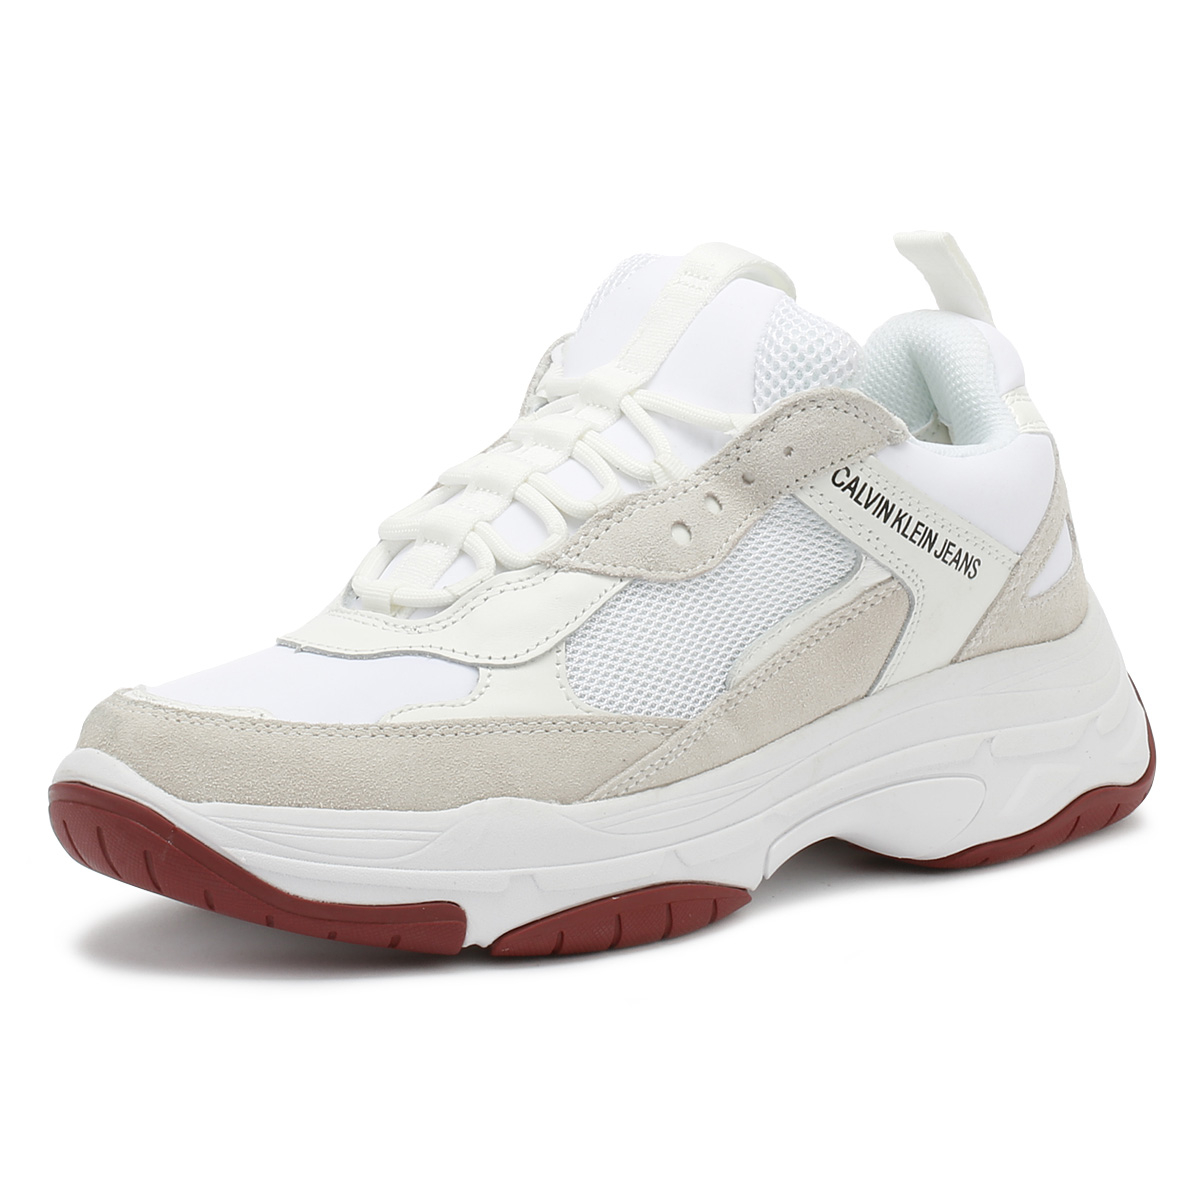 ee807e601 Details about Calvin Klein Jeans Womens Trainers White Maya Chunky Lace Up  Sport Casual Shoes